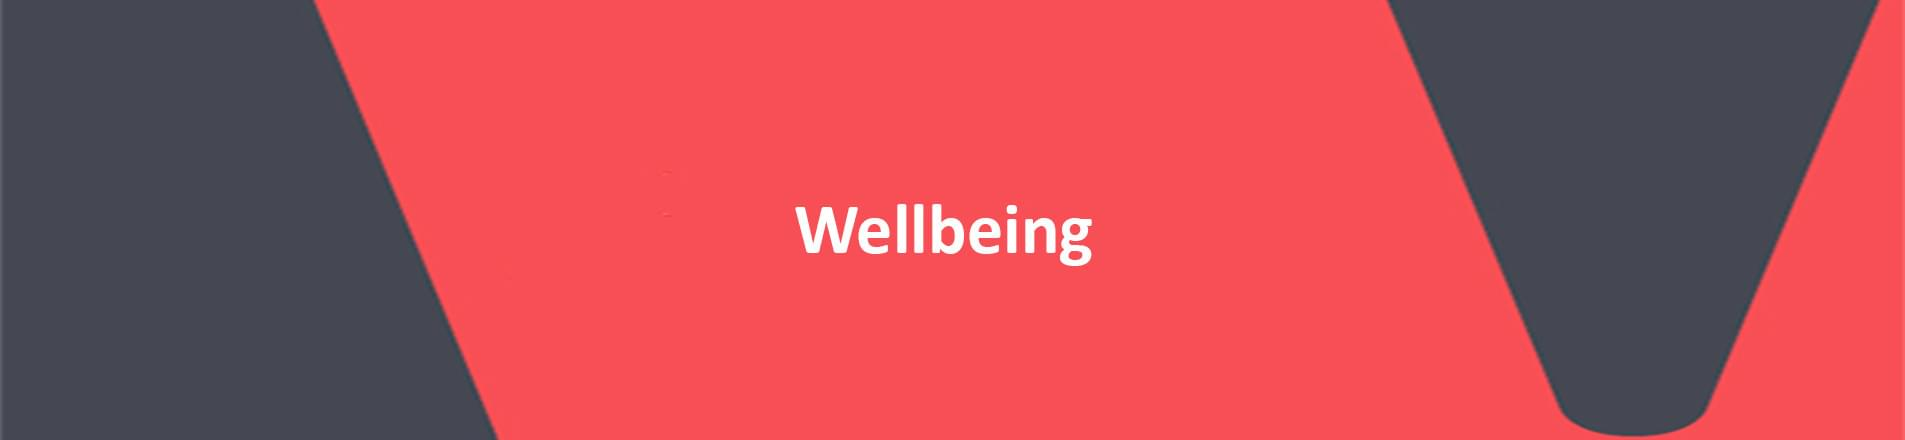 The word wellbeing on red VERCIDA branded background